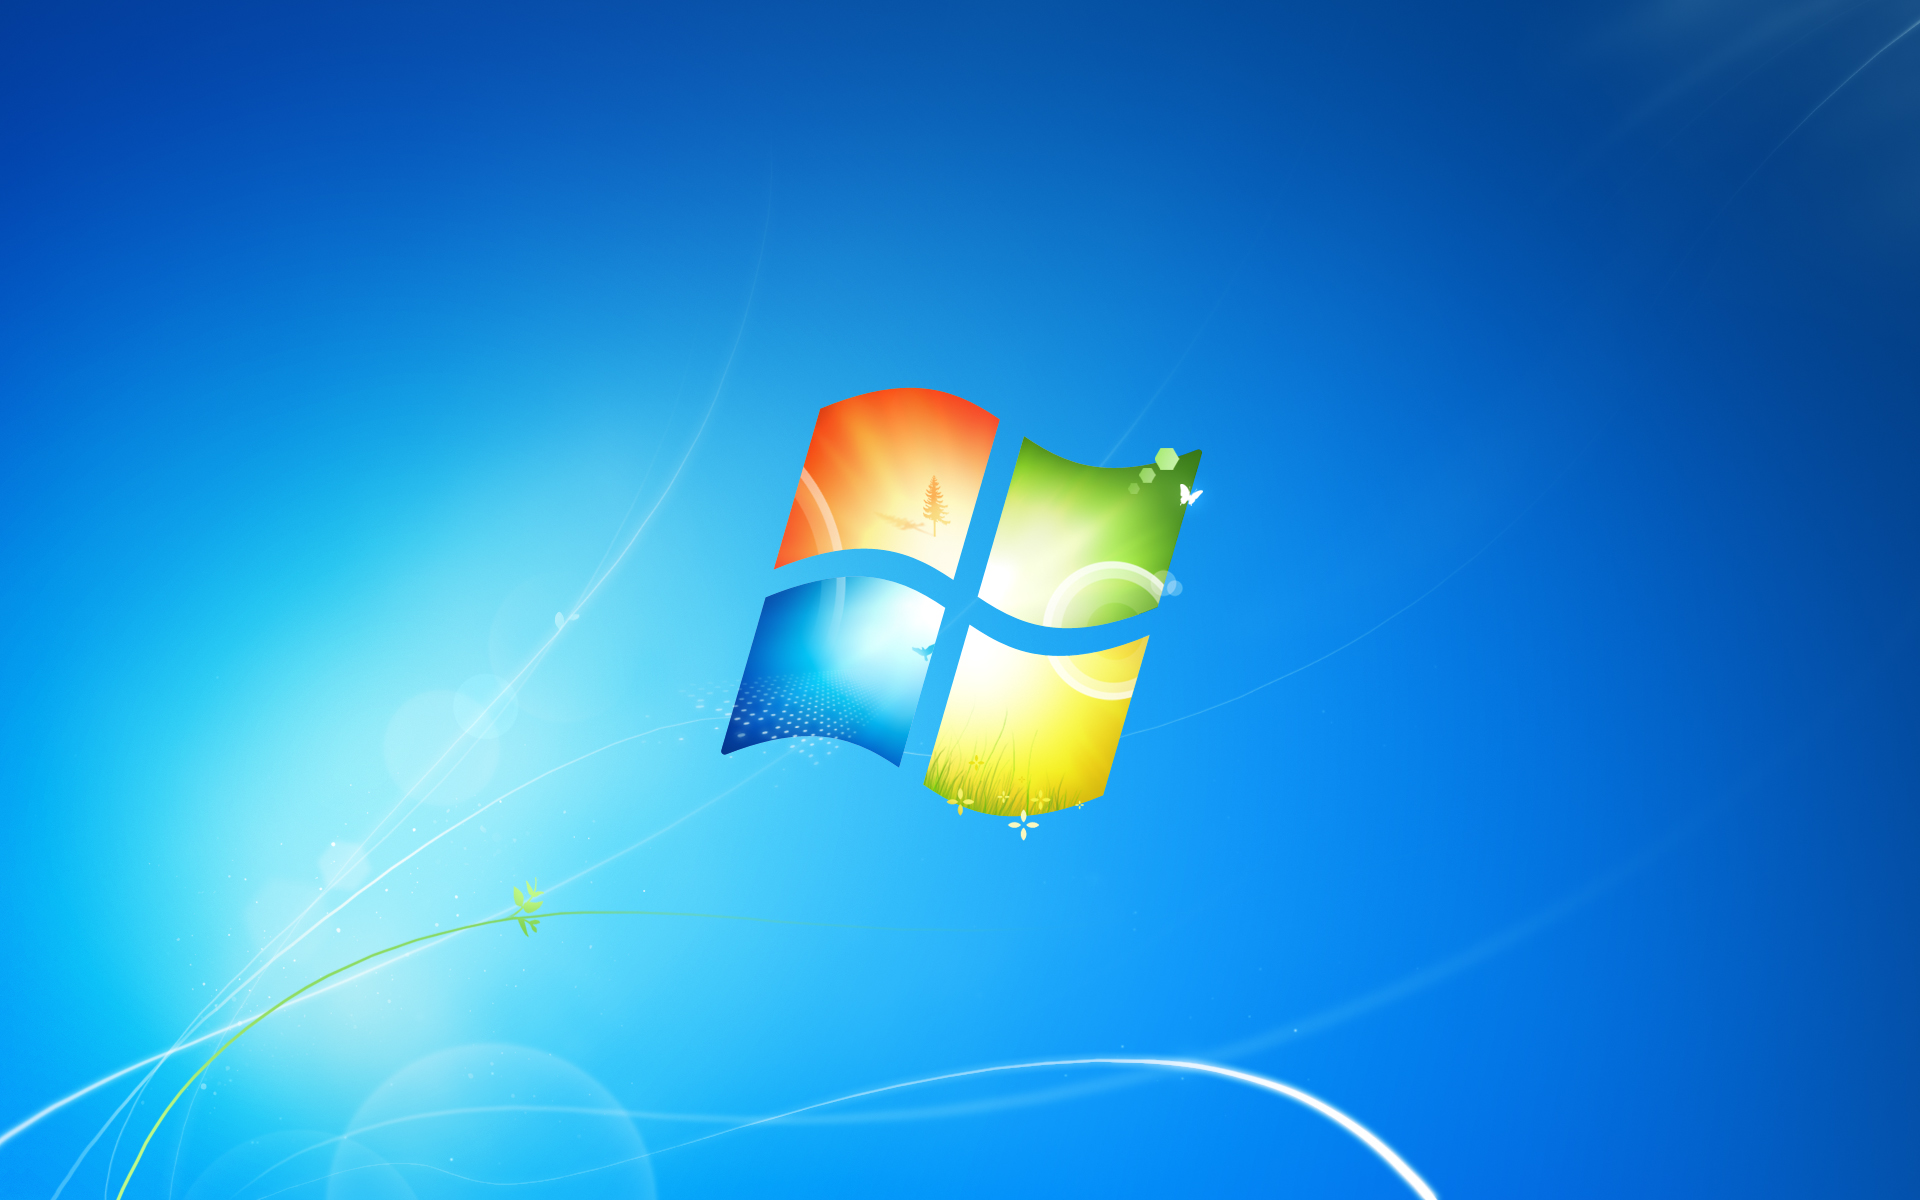 Windows official wallpaper 109560 for Windows official